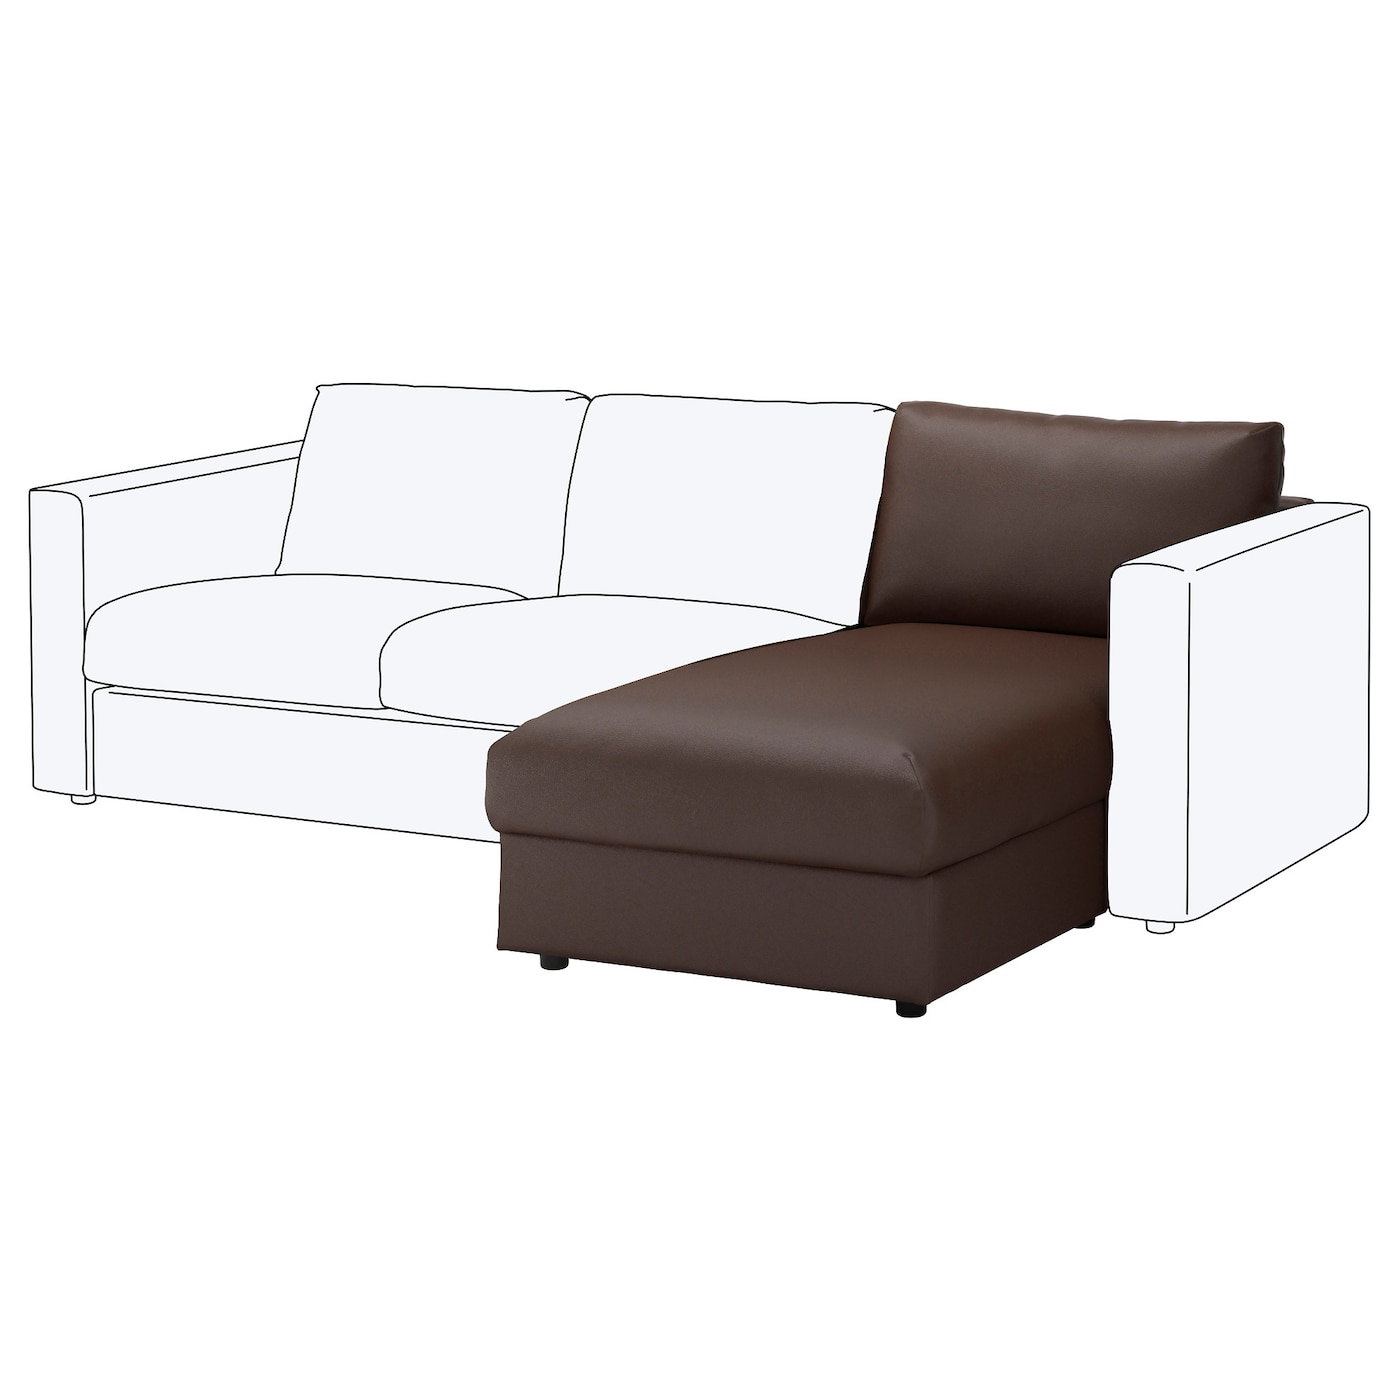 Vimle chaise longue section farsta dark brown ikea - Chaise longue jardin ikea ...